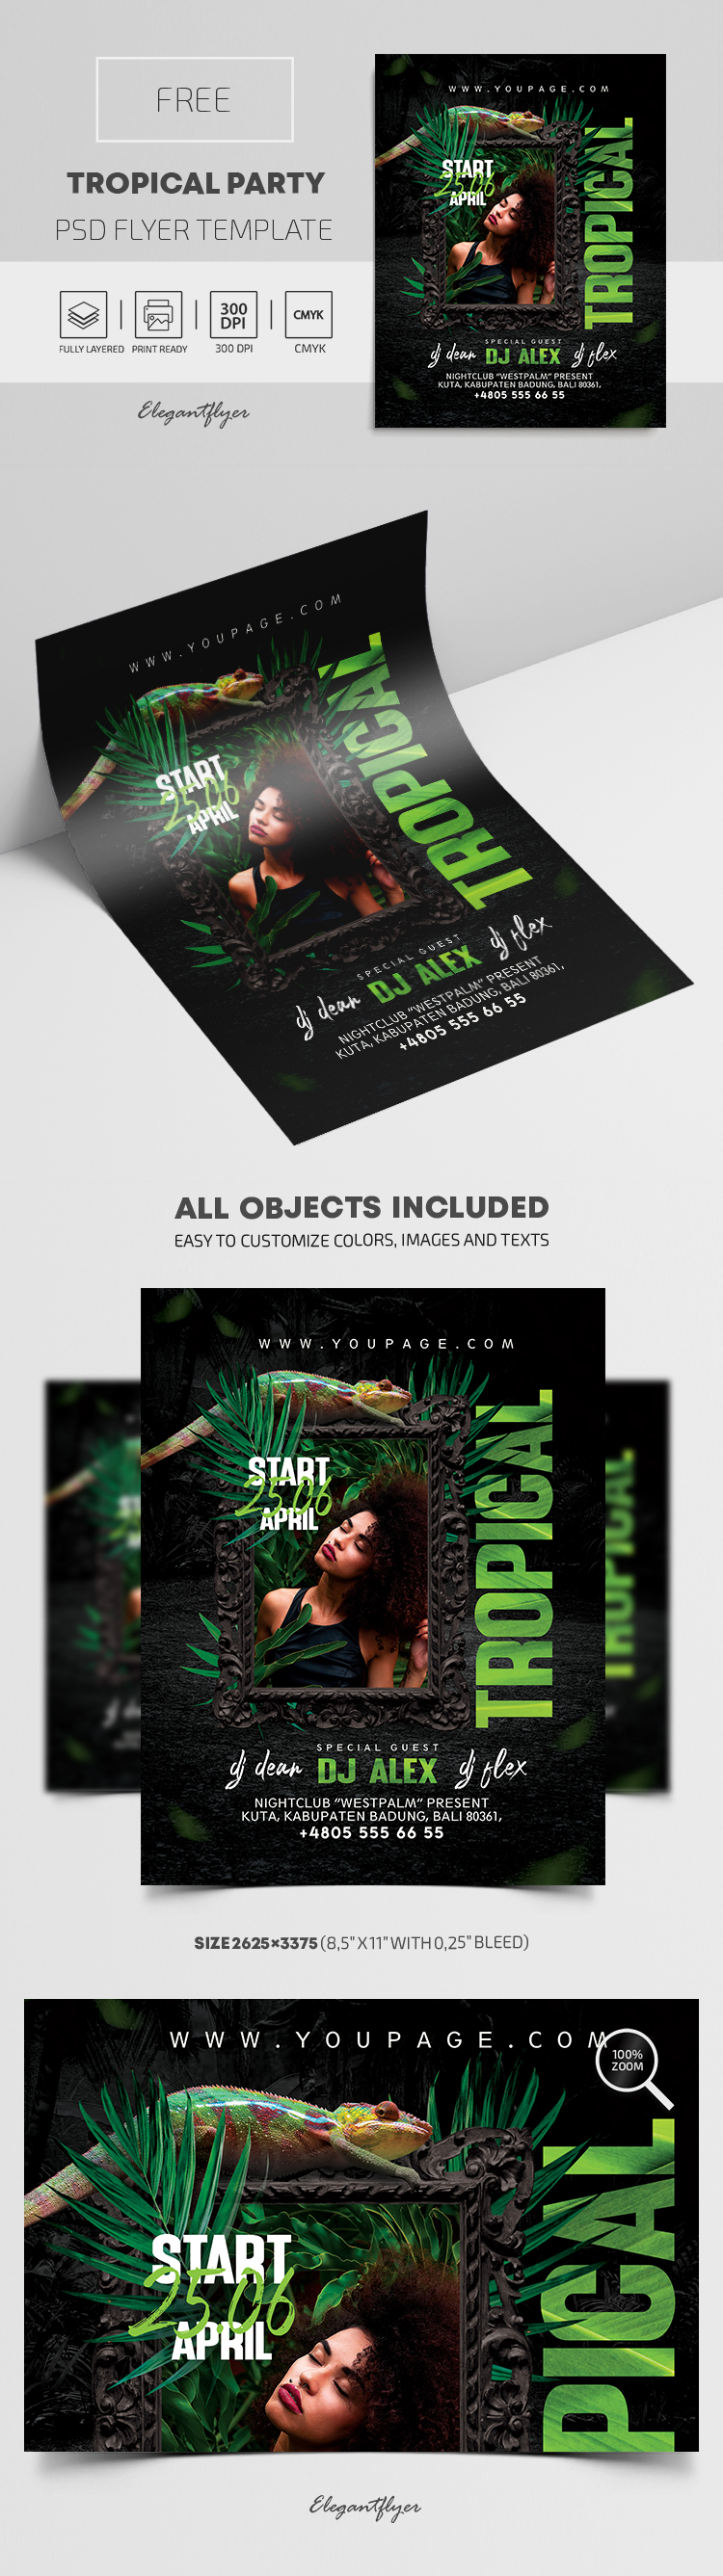 Tropical Party – Free PSD Flyer Template